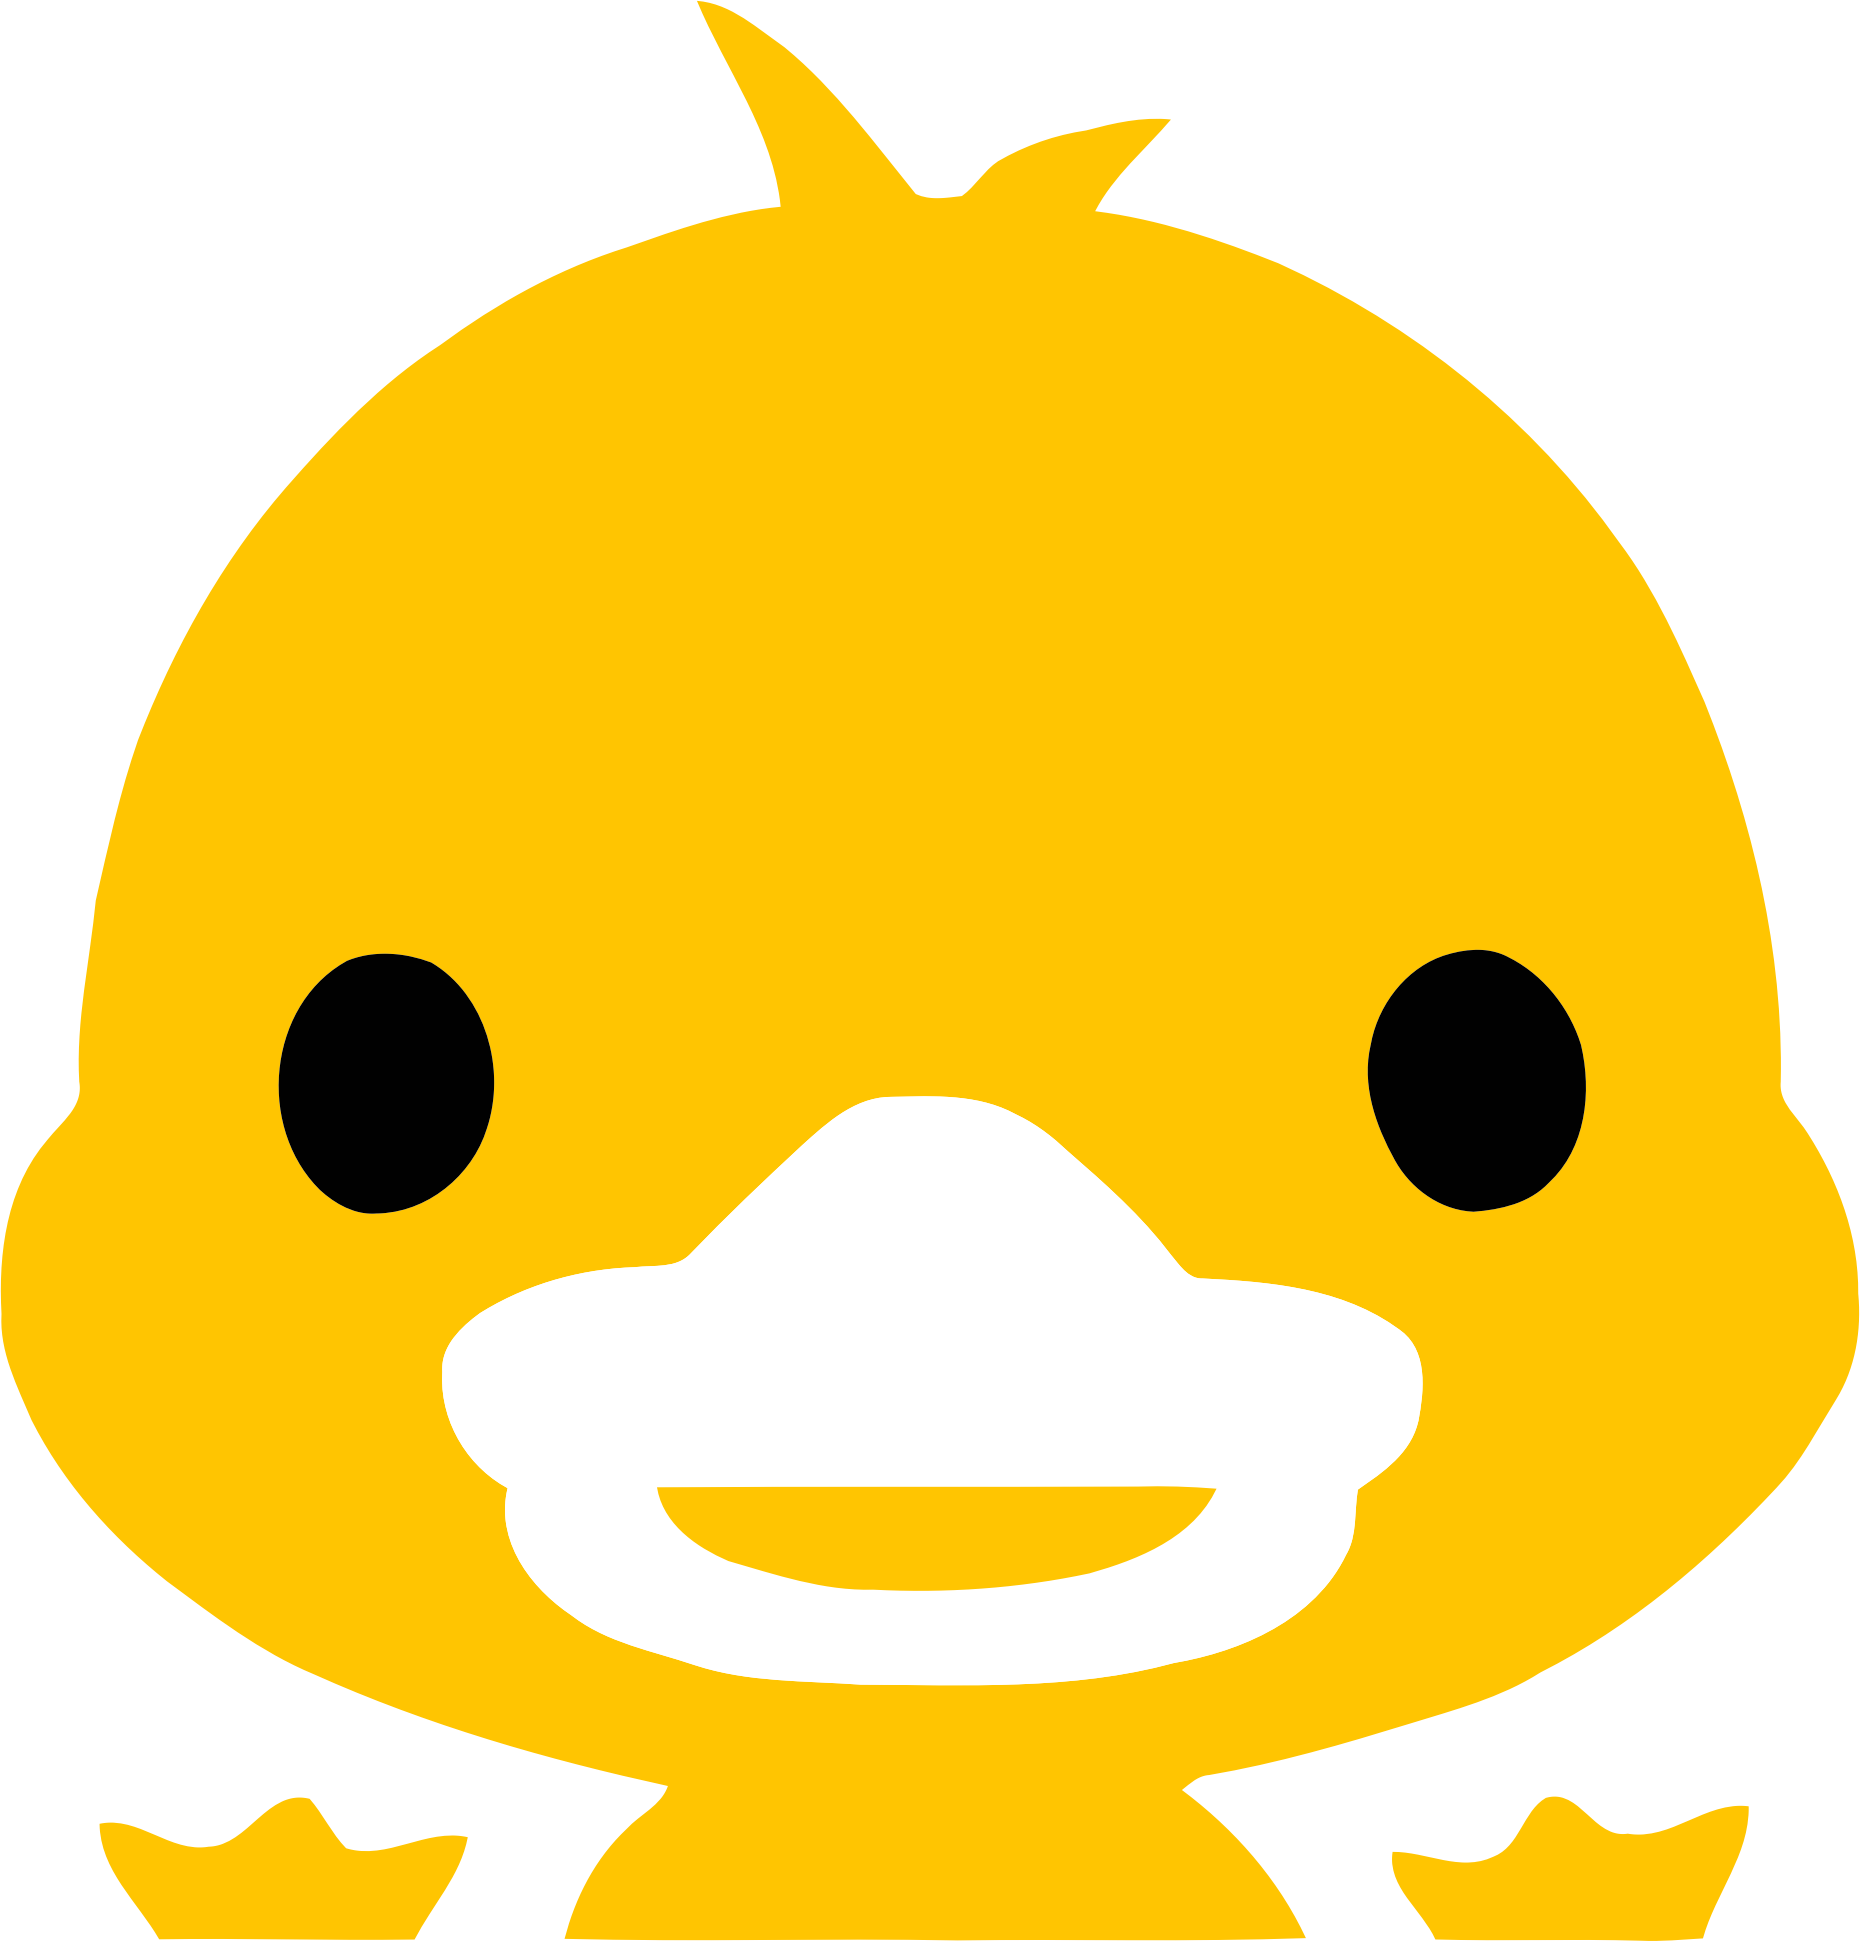 Yellow Duckling Icon by GDJ